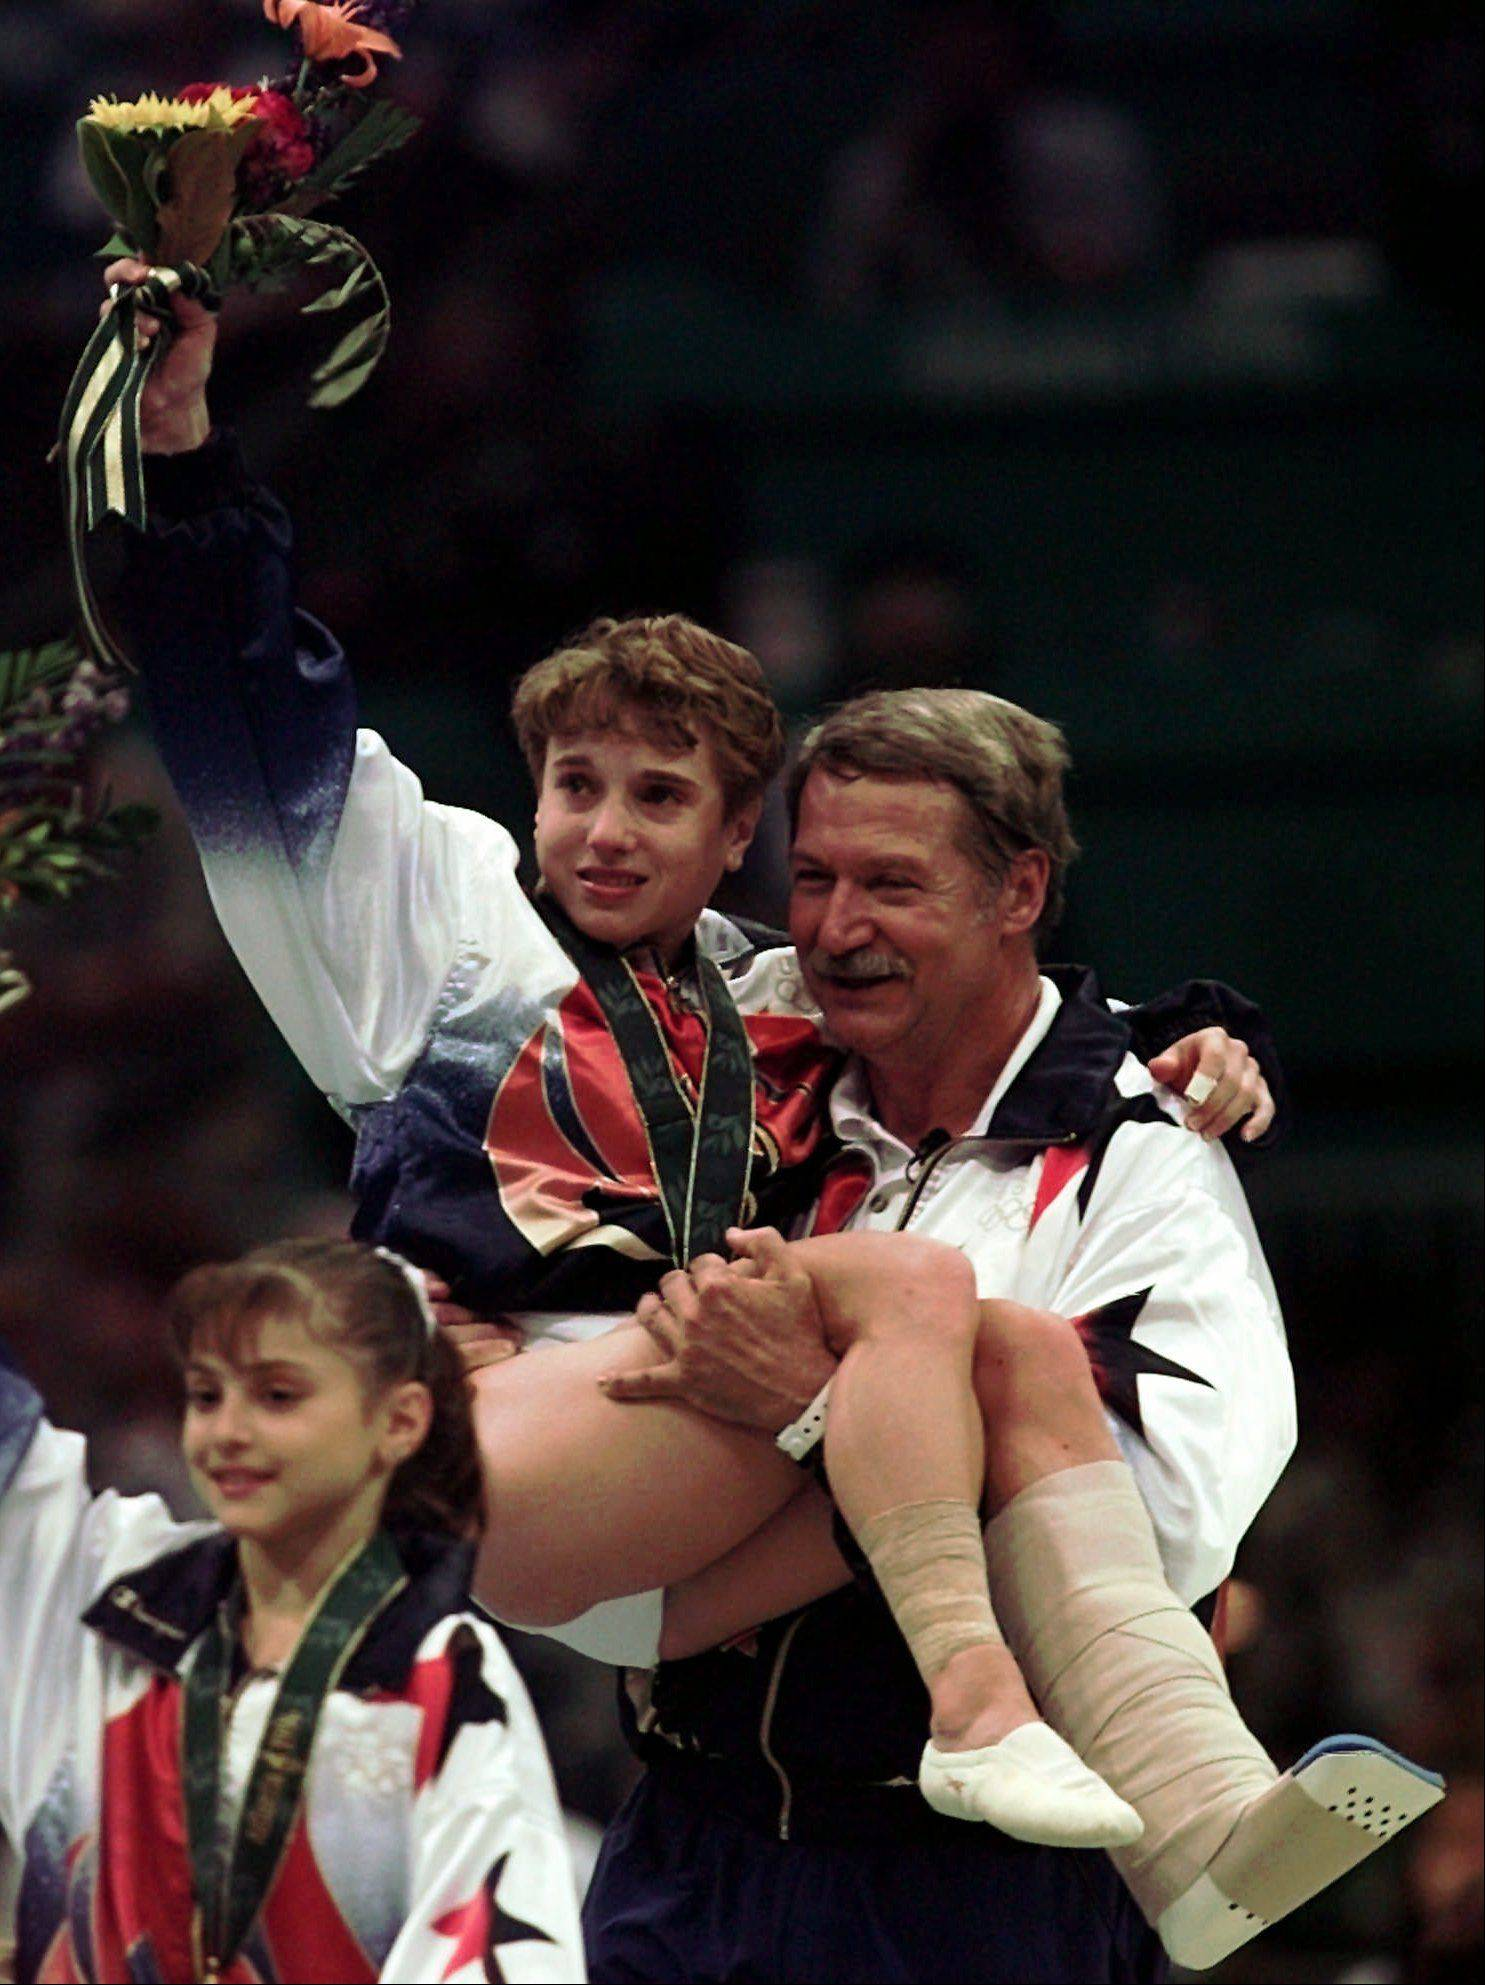 U.S. gymnastics coach Bela Karolyi carries injured Kerri Strug following the awarding ceremony at the women's team gymnastics competition at the Centennial Summer Olympic Games in Atlanta on Tuesday, July 23, 1996. Strug injured her left leg during the vault routine. The U.S. won the gold. At left is Dominique Moceanu.